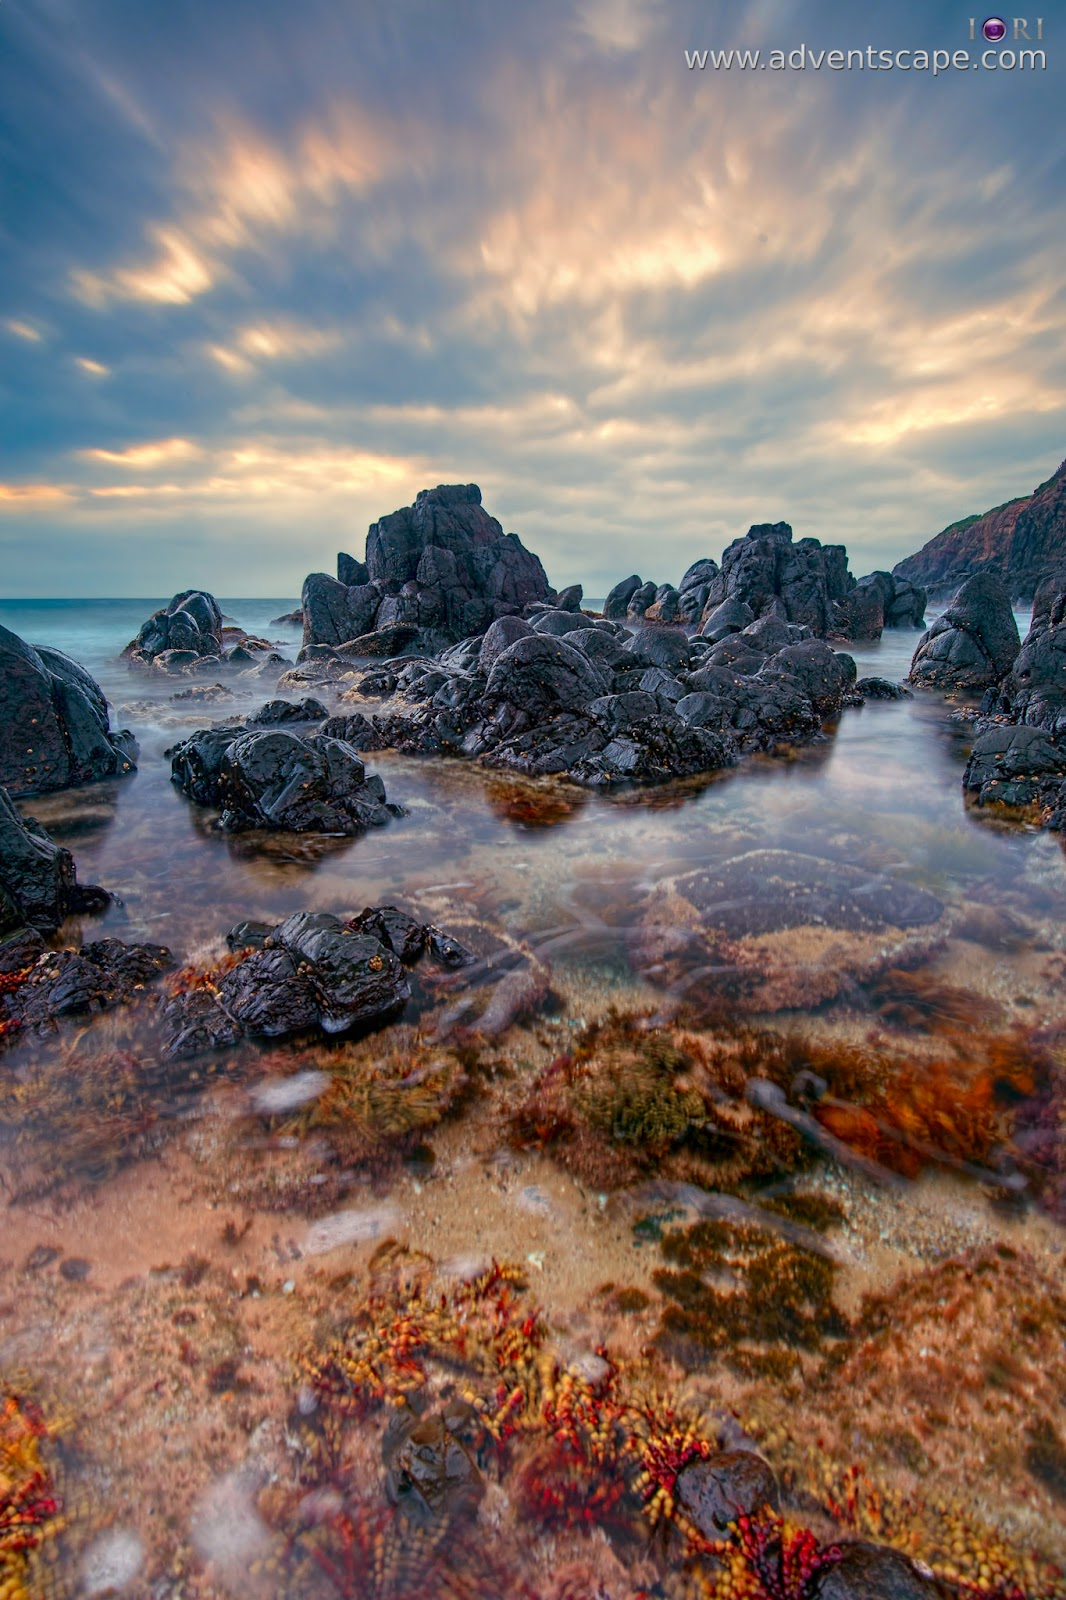 Philip Avellana, Australian Landscape Photographer, adventscape, CPL, circular polarizer, effect, see through, Minnamurra, Kiama, NSW, New South Wales, Australia, beach